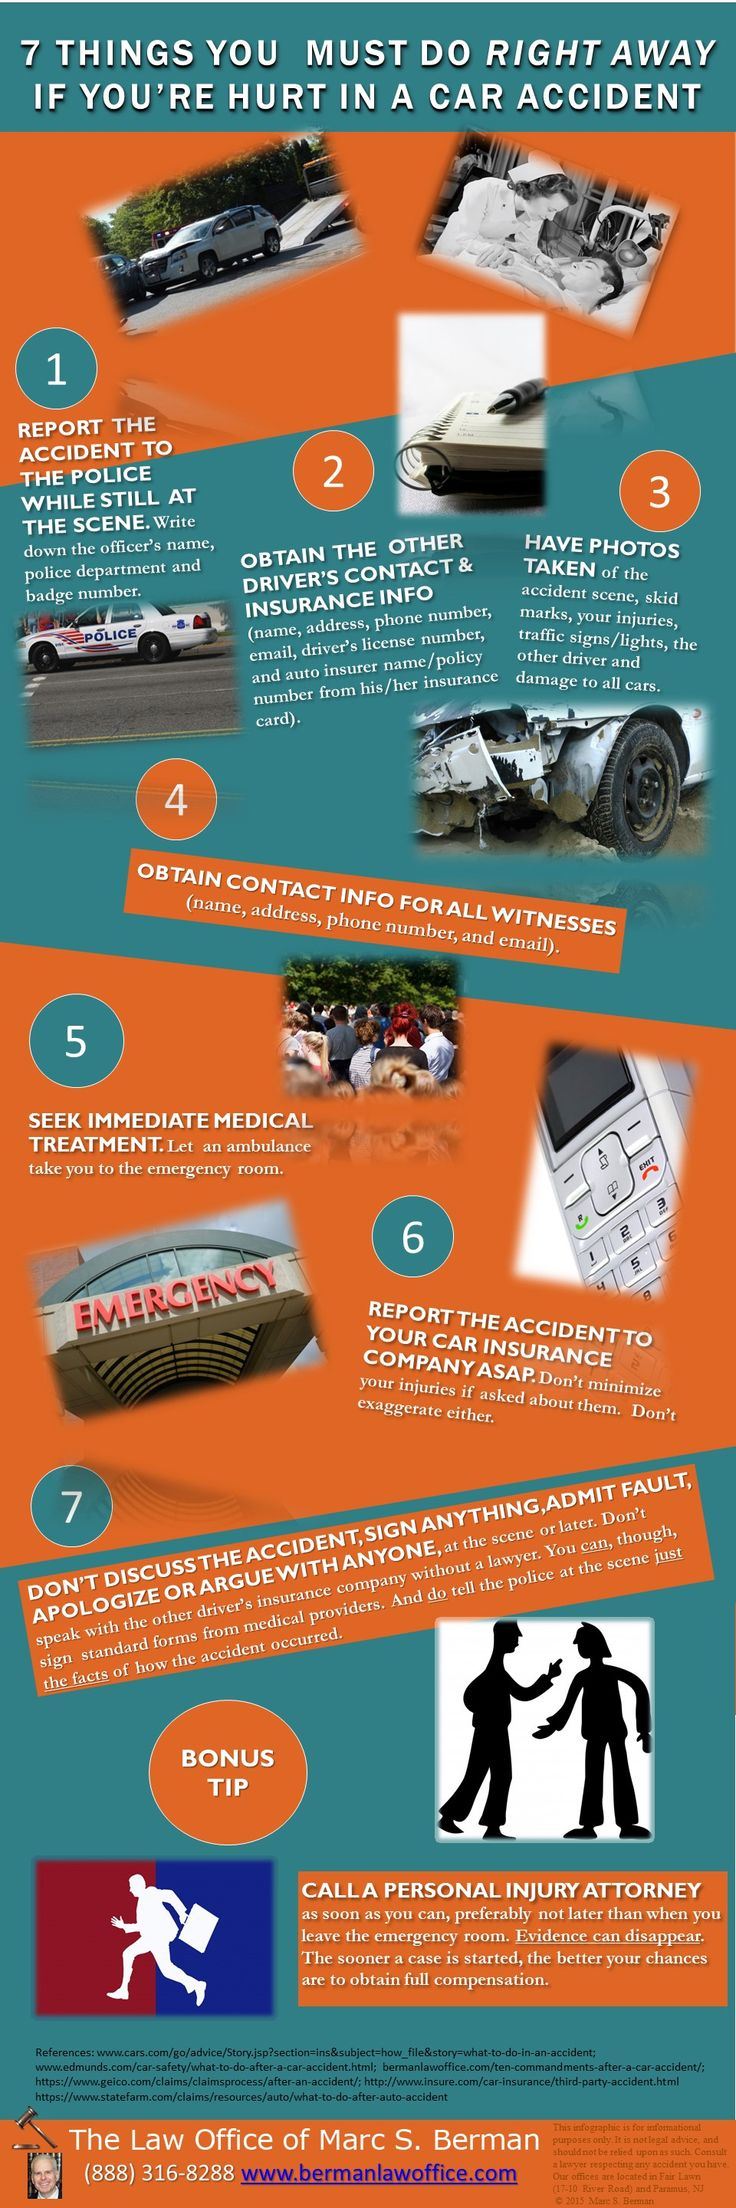 Best  Car Accidents Images On Pinterest Cars And Motorcycles - Signs of cars with names